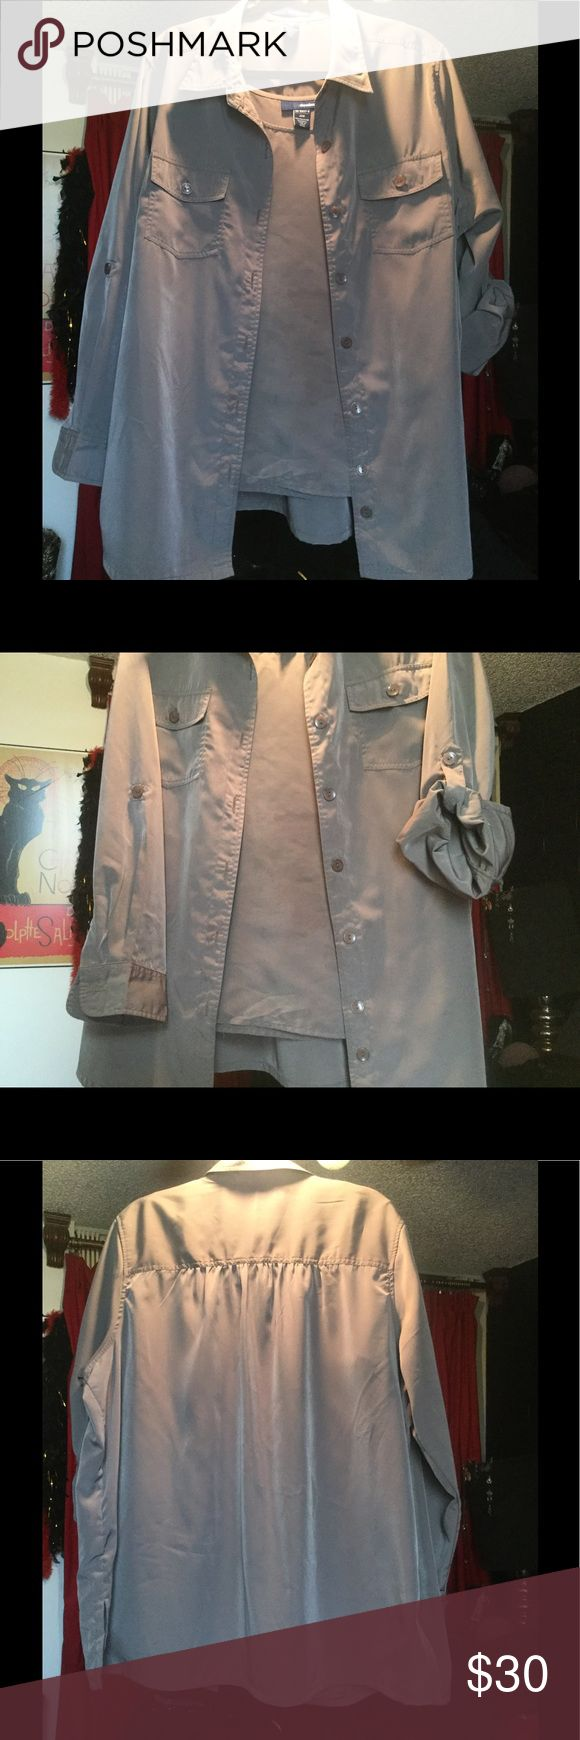 """💥 TAUPE 2 PC SET . . . JACKET & TOP . . . """" NWOT """" TAUPE TOP & JACKET BOUGHT SEPARATELY TO MAKE A STUNNING OUTFIT . . . FOR EITHER DAY OR NIGHT . . .  100% SOFT POLYESTER . . . BEING A CLOTHES HORSE, I BOUGHT 3 DIFFERENT COLORS, THEN STYLE & WEIGHT CHANGED, NOW ITS TIME FOR ANOTHER OWNER TO REAP THE GOODS . . . CAN BE DRESSED UP OR DOWN DEPENDING ON ACCESSORIES . . . ROMANS 24/7 Other"""